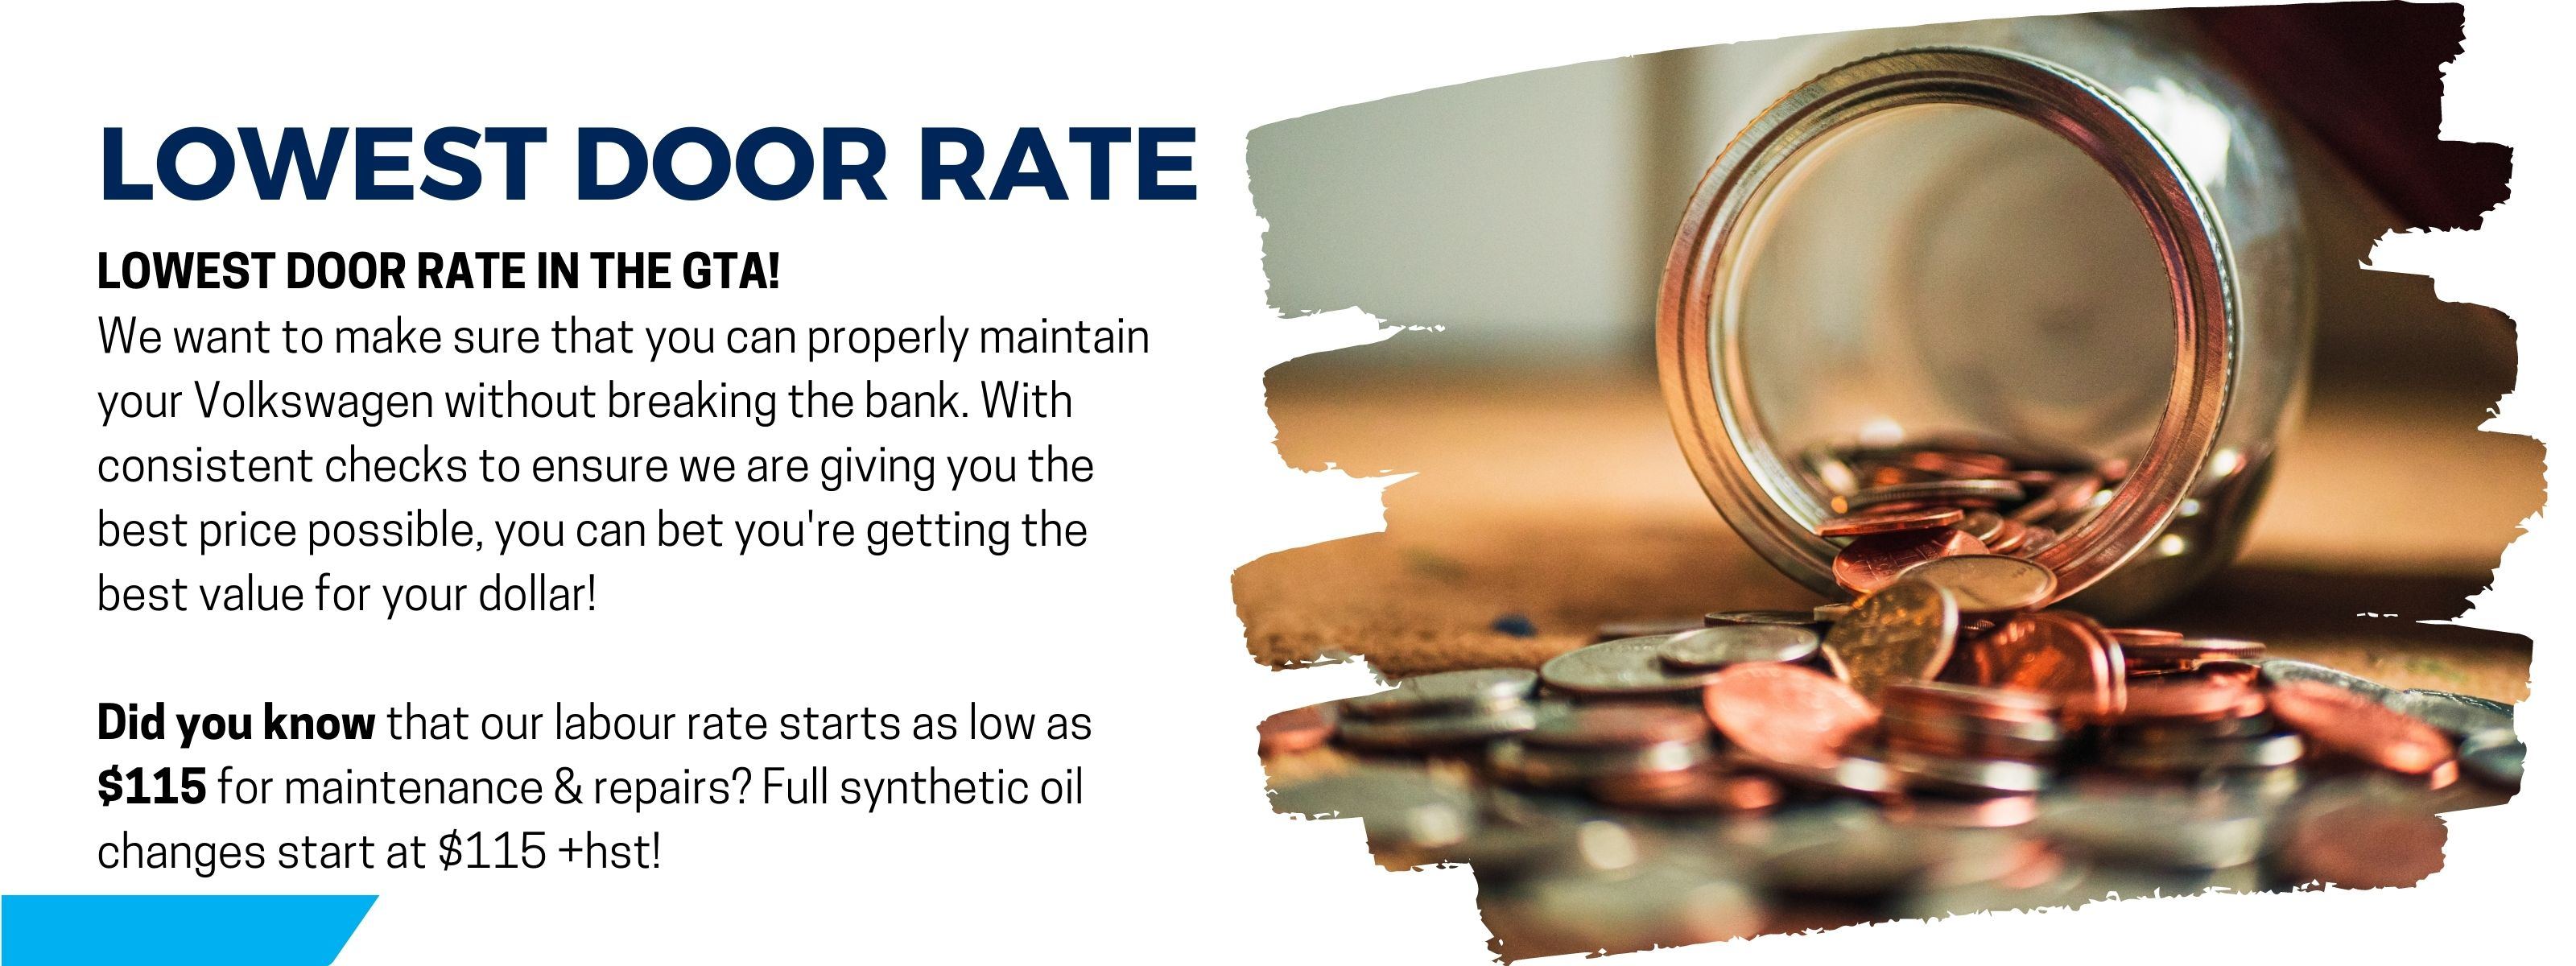 Why Choose Us Service Page, pricing, lowest door rate in the gta, best value for your dollar